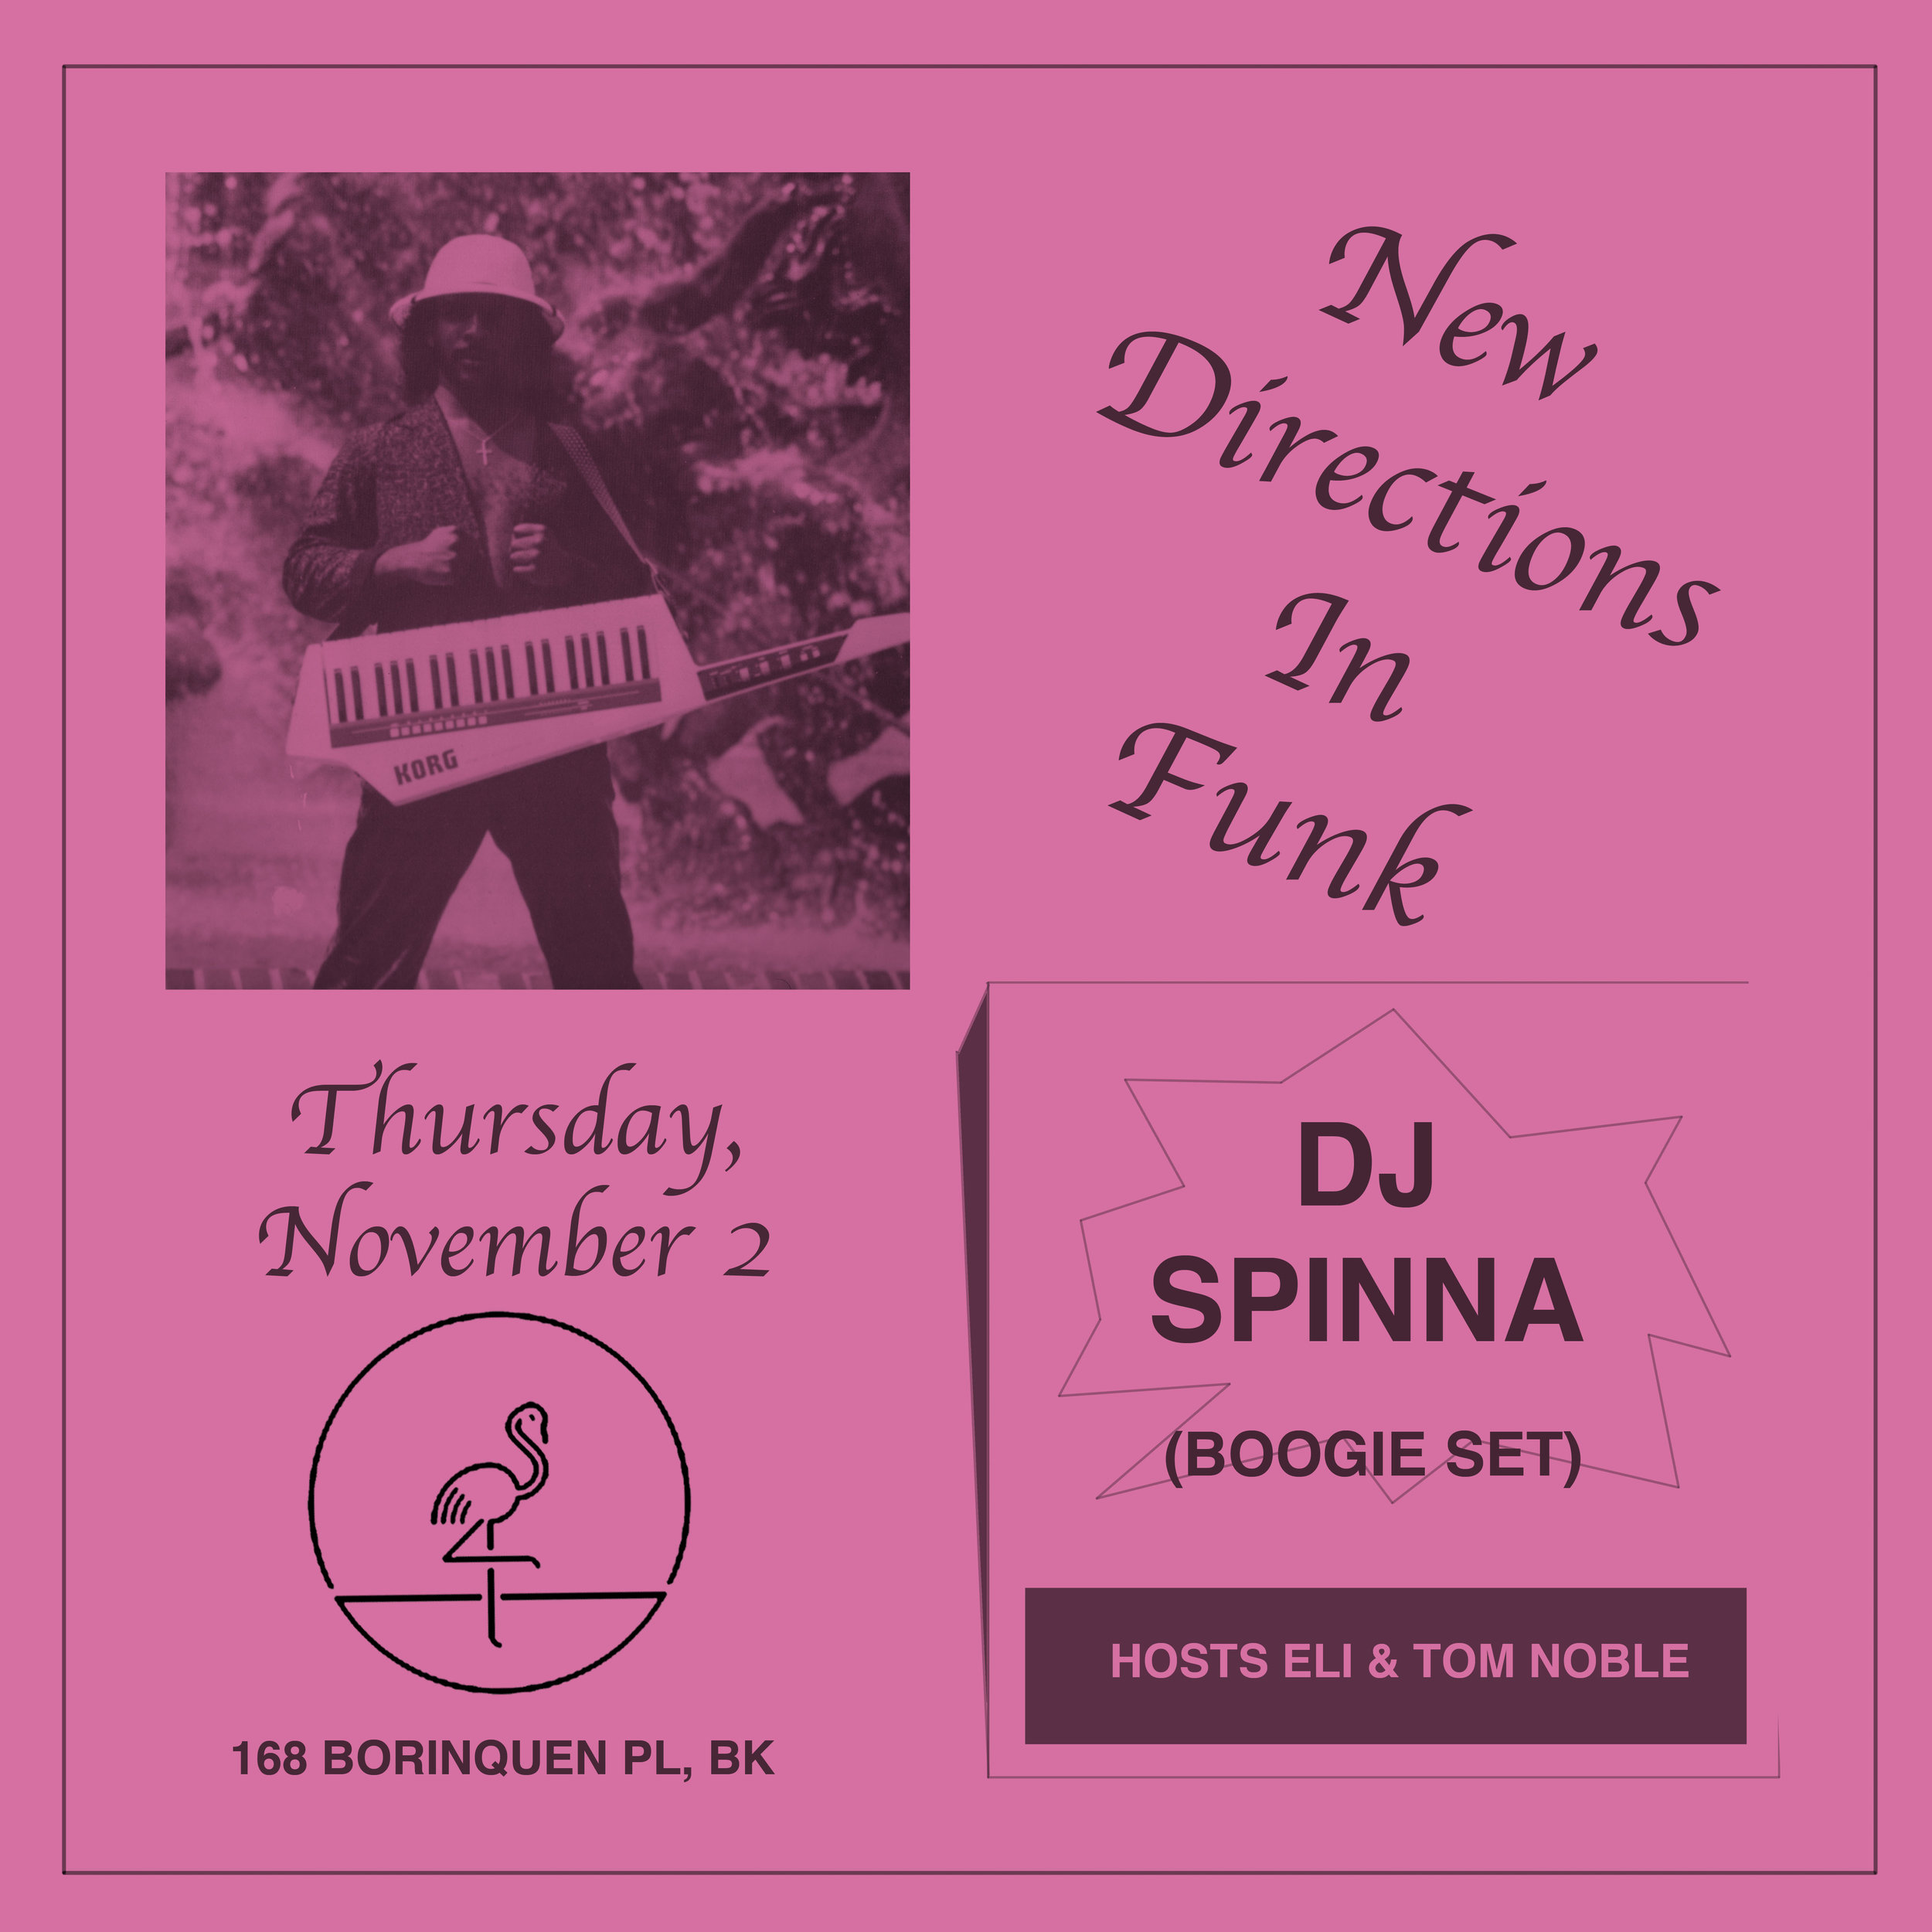 NEW DIRECTIONS IN FUNK - SQUARE.jpg